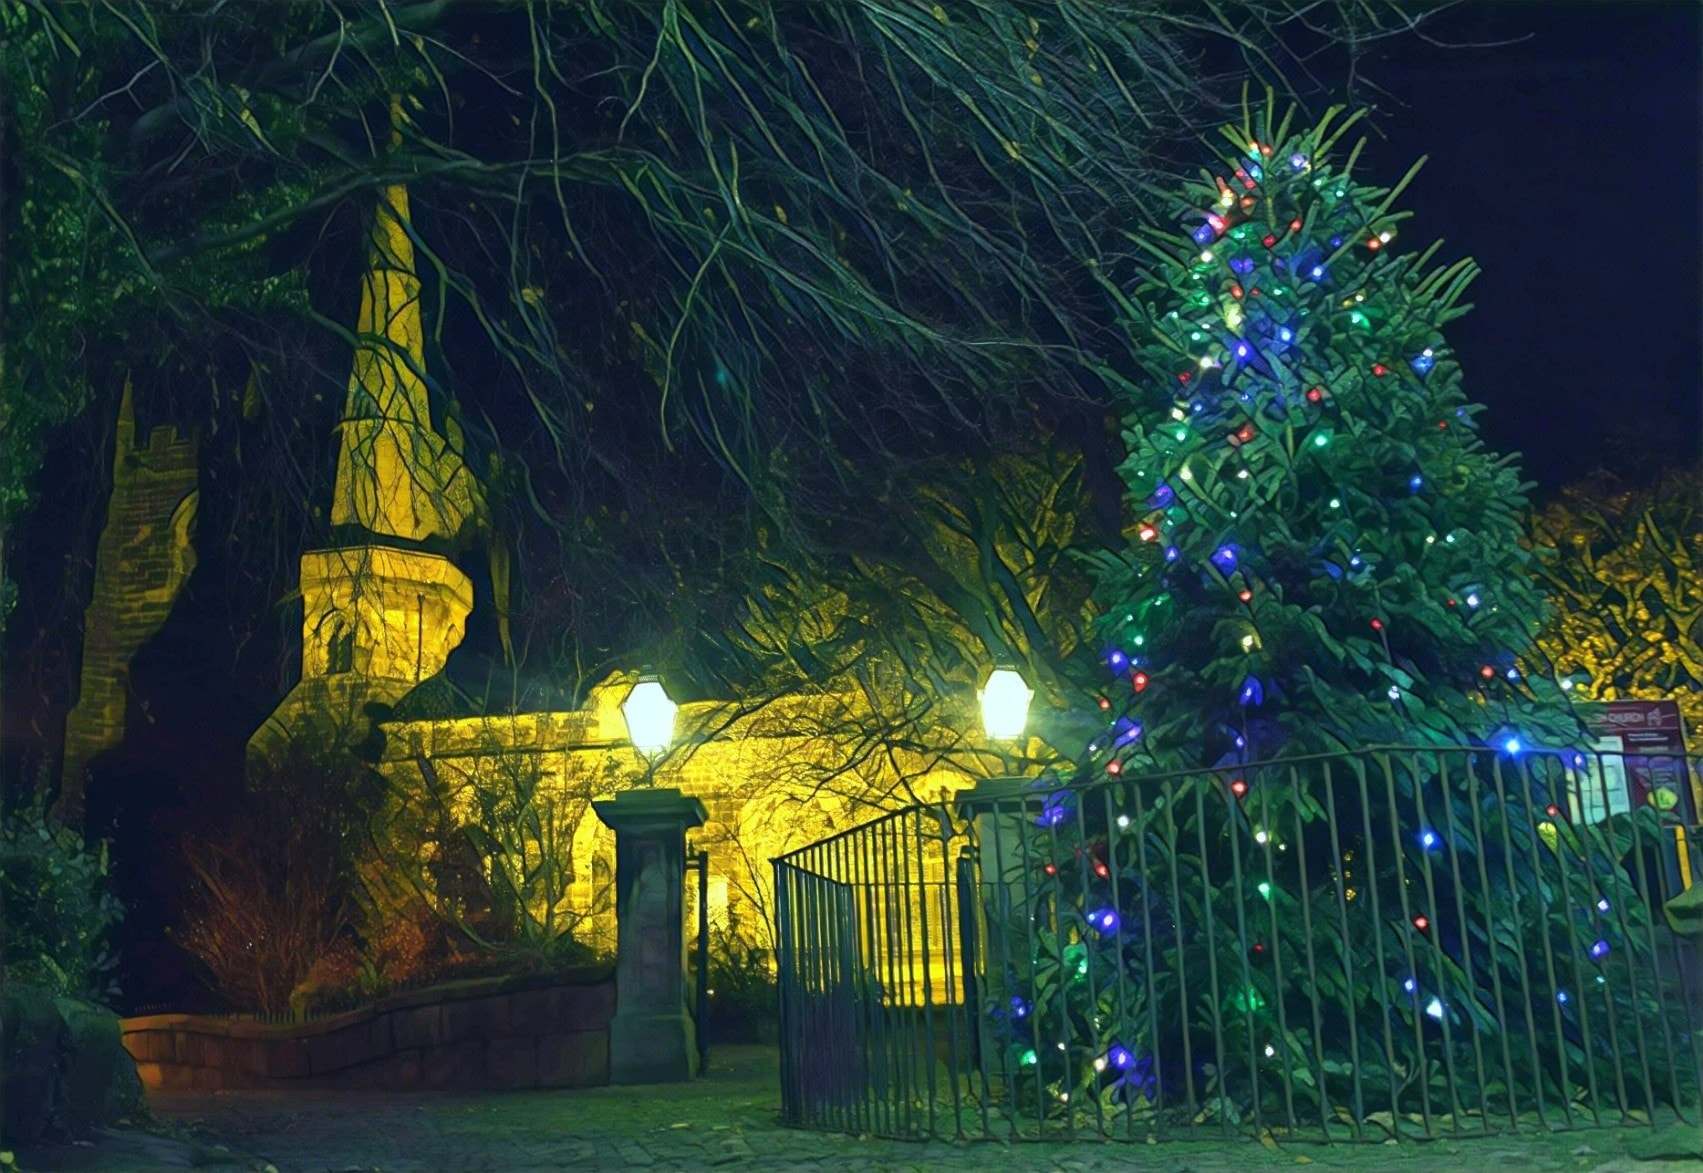 Public support needed as Community Christmas Tree returns for fifth year